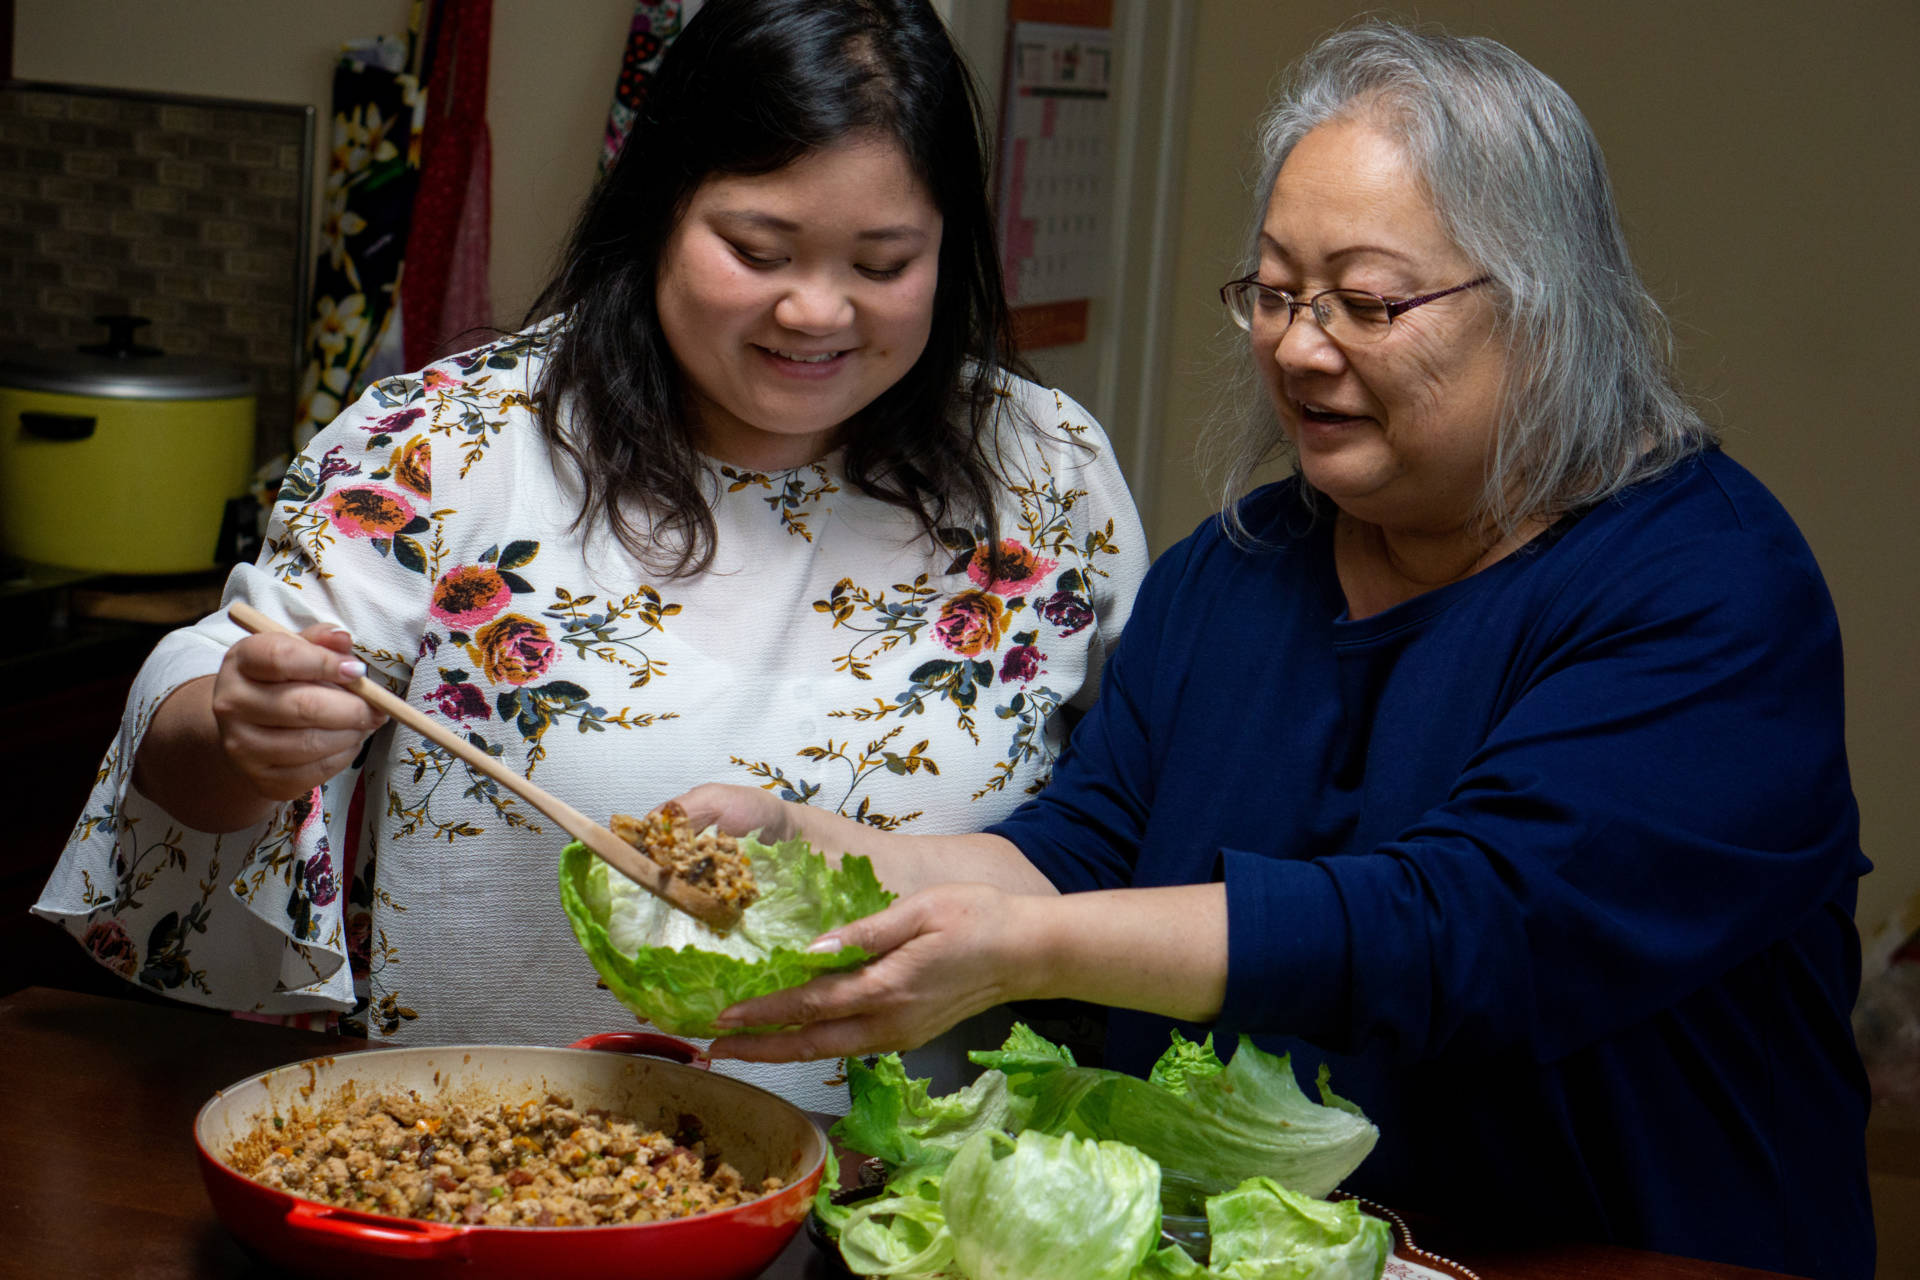 Cheryl and her mother, Diana, serve up some lettuce wraps.